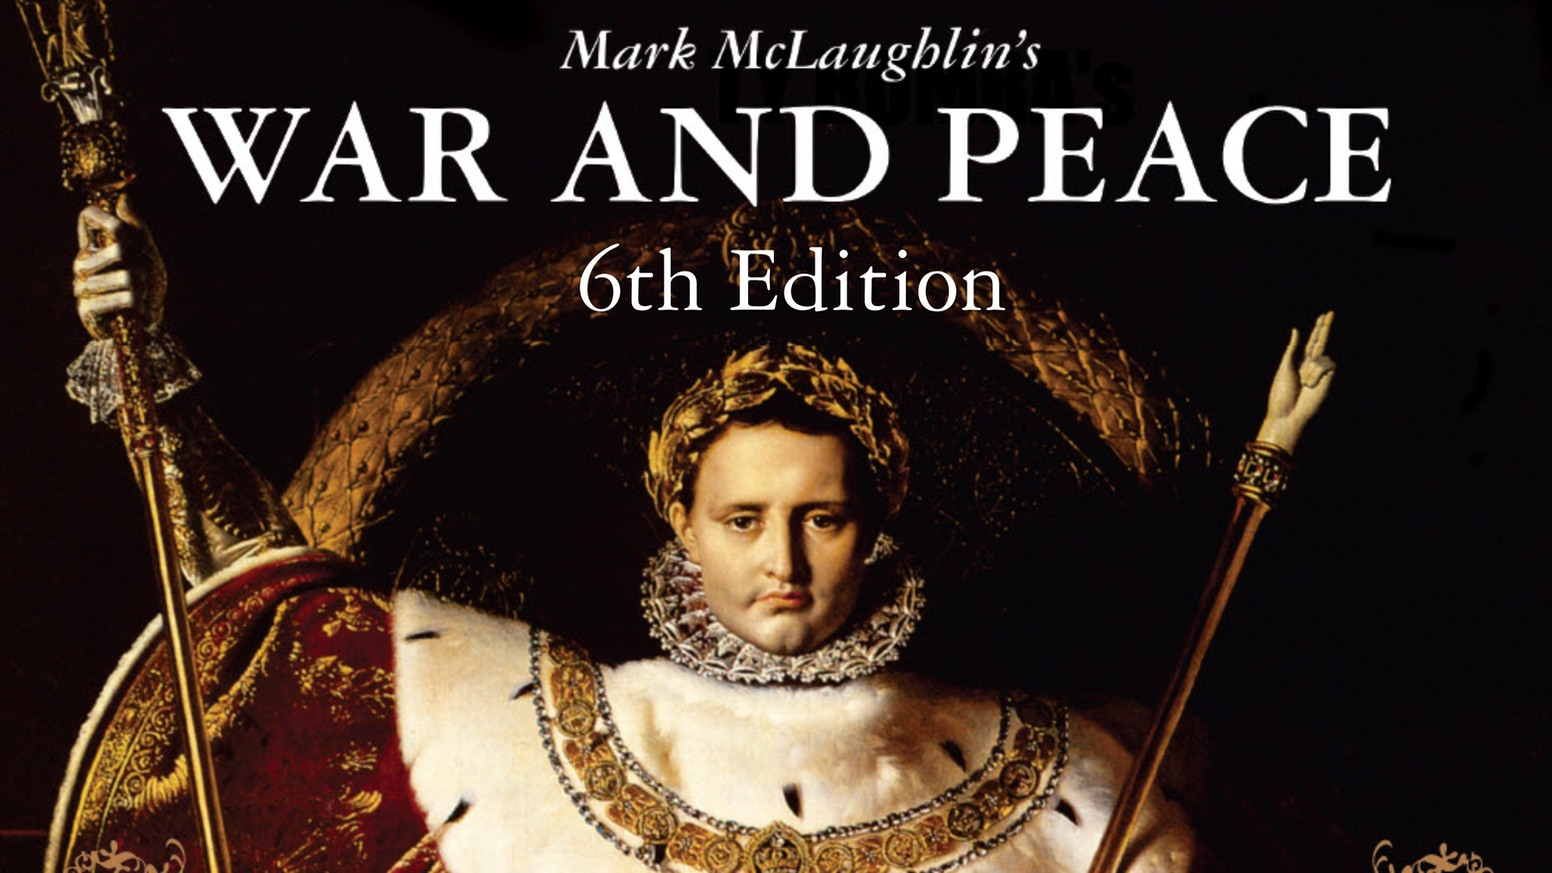 The 6th edition of Mark McLaughlin's War and Peace